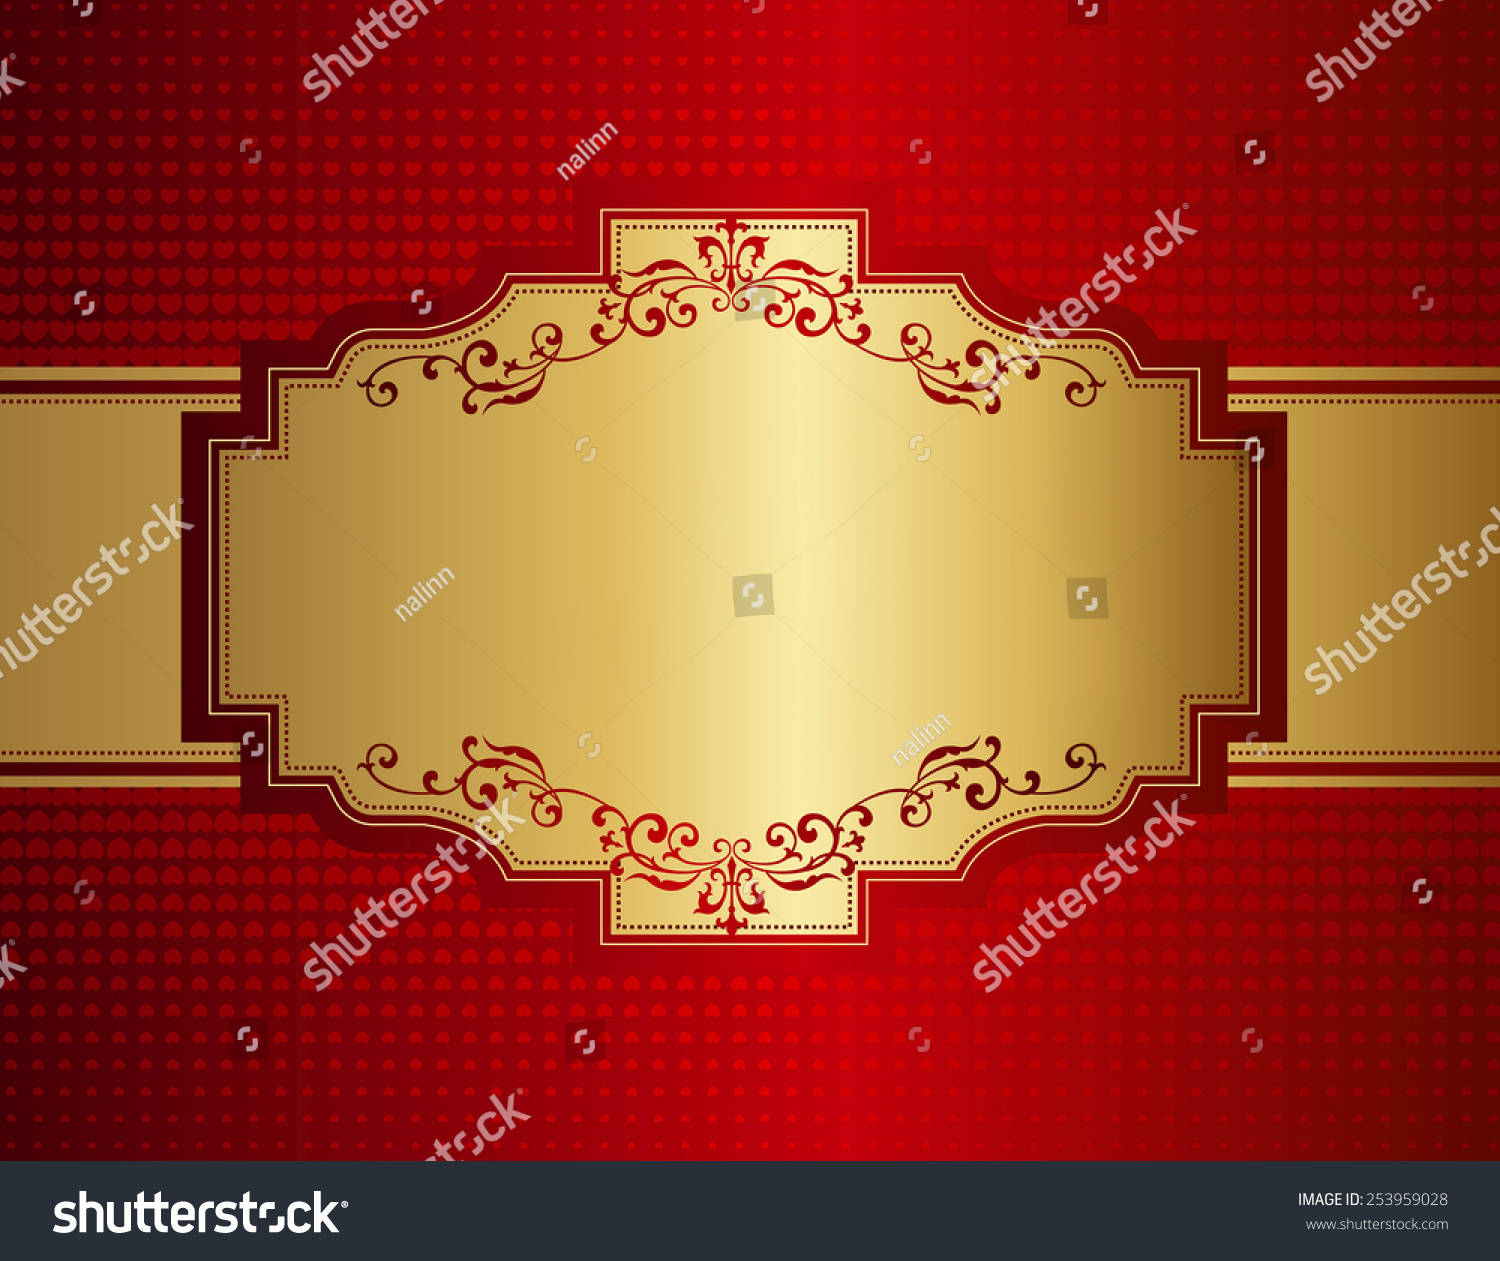 Elegant Wedding Invitation Anniversary Background Frame Stock Vector ...